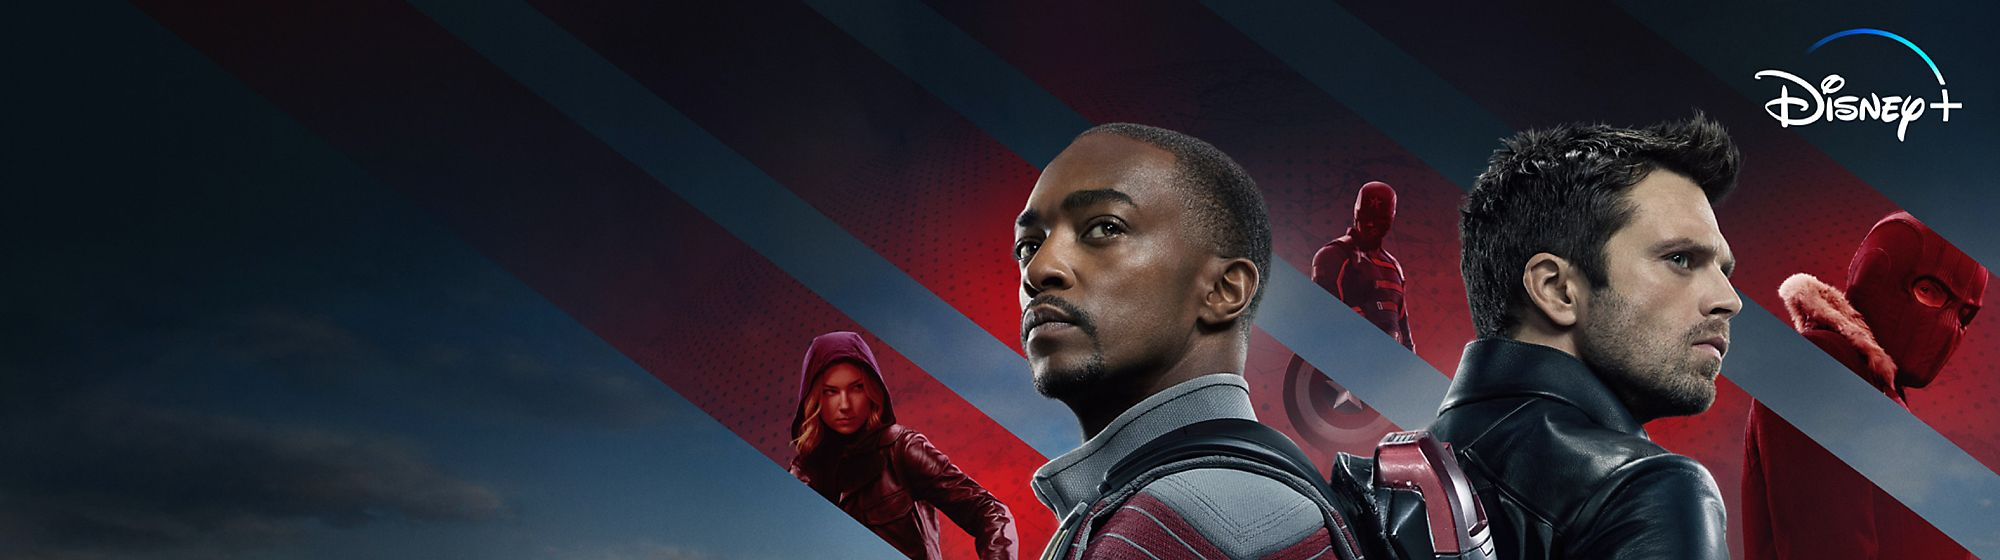 The Falcon and The Winter Soldier The Falcon must learn what it means to carry Captain America's shield, in this unmissable Disney+ Original series.